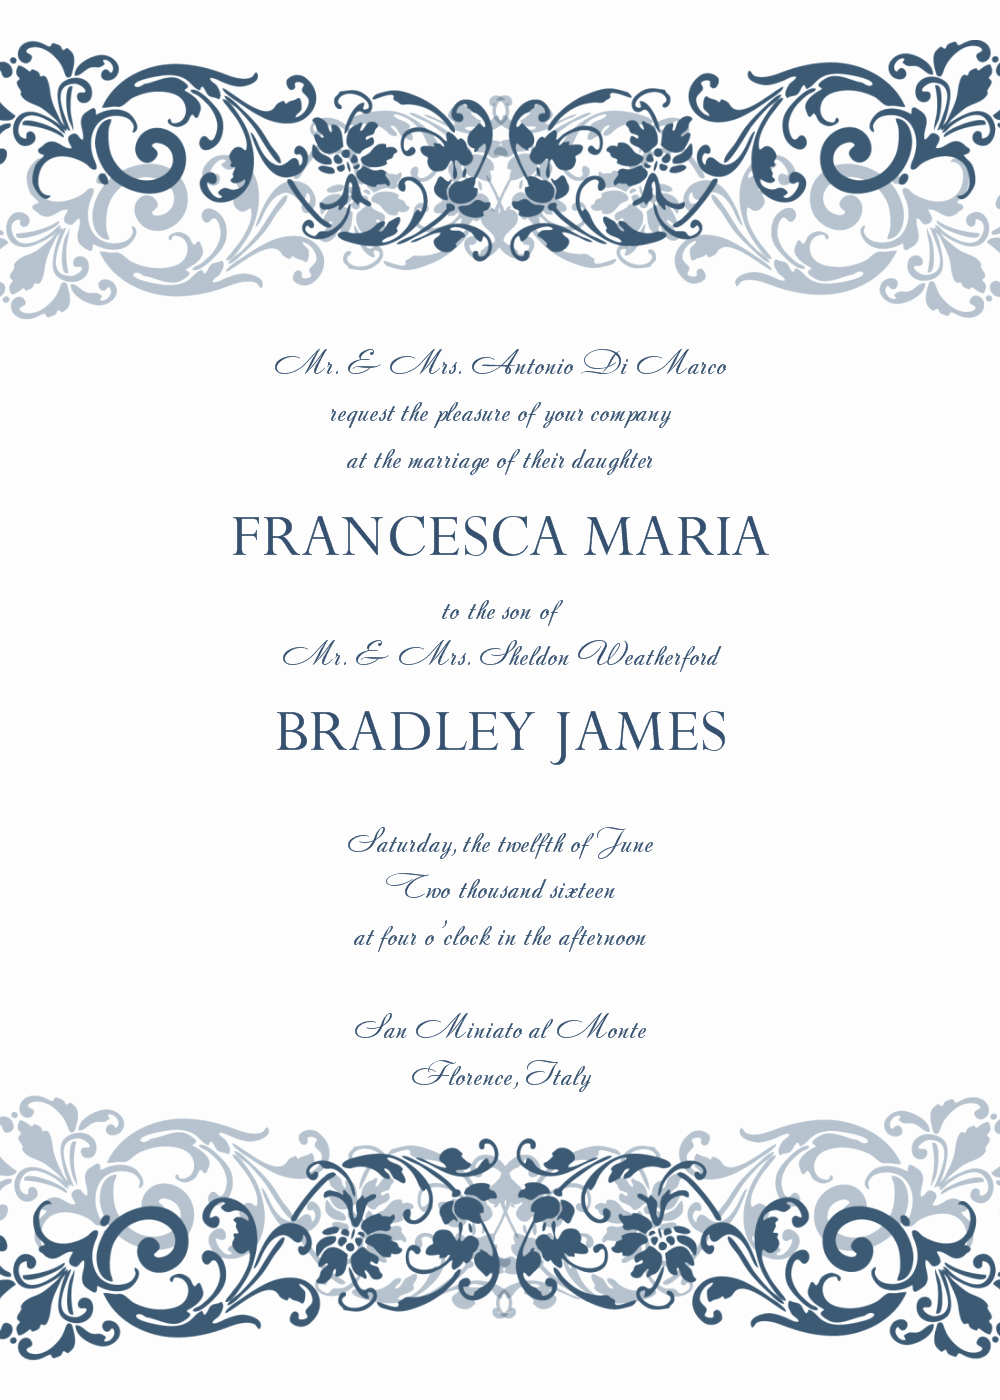 Wedding Invitation Template Word Free Awesome 8 Free Wedding Invitation Templates Excel Pdf formats